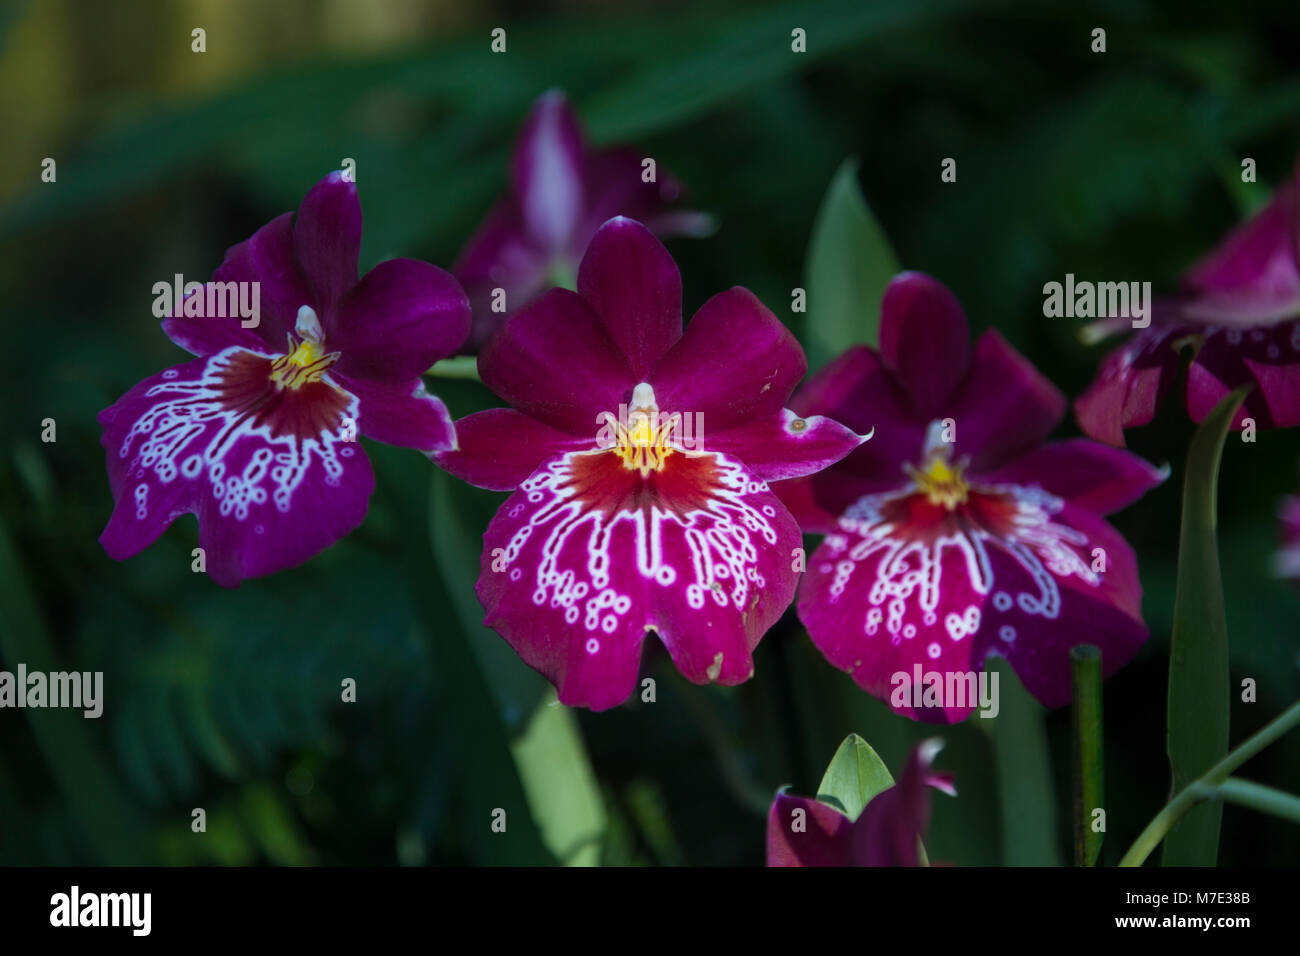 Miltonia 'Pansy' orchid at the Orchid festival in Kew Gardens 2018 - Stock Image